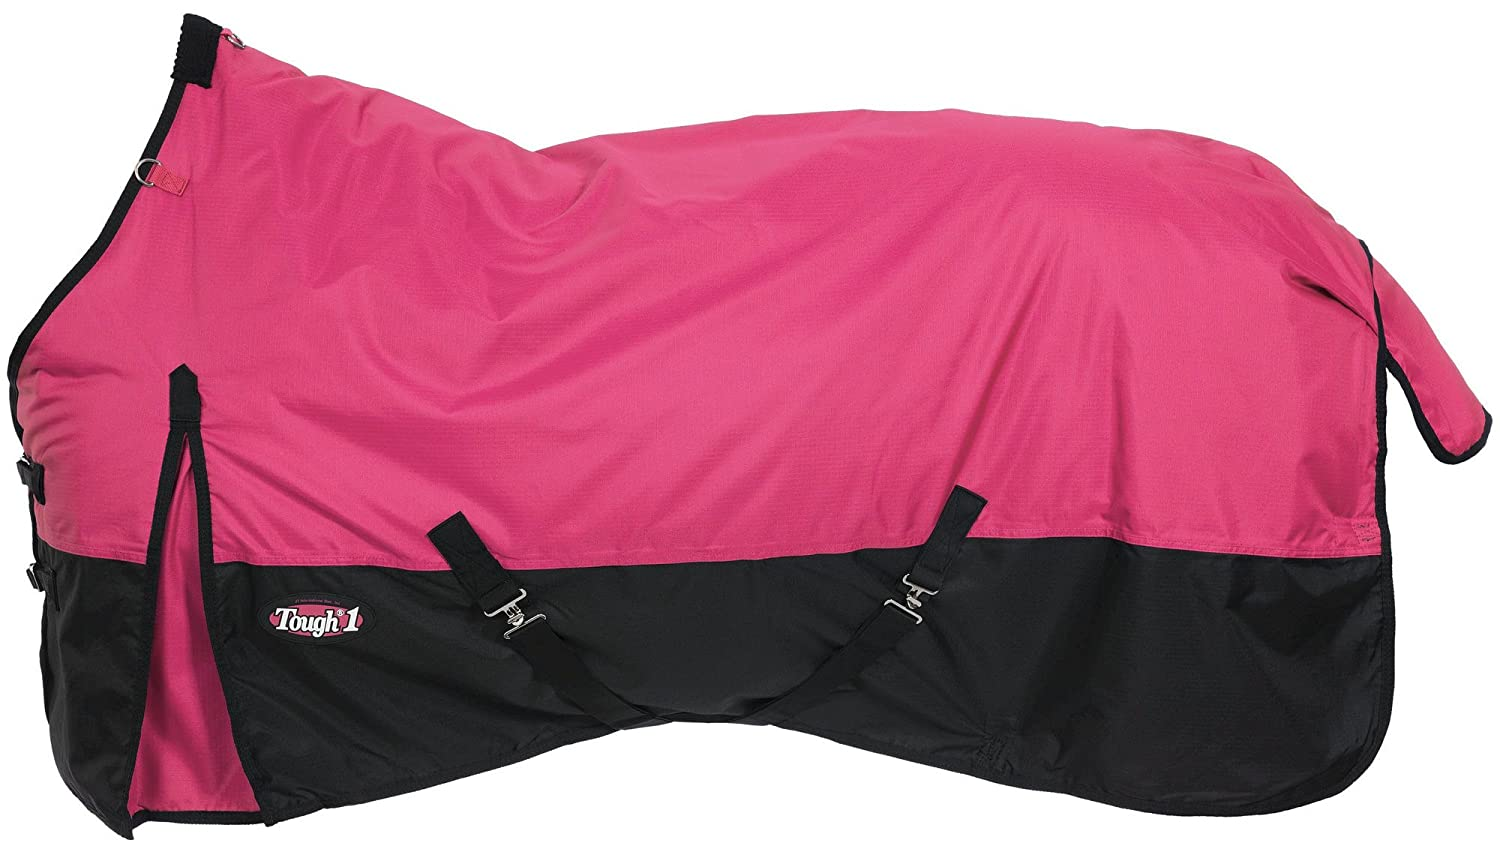 tough-1 600デニールTurnout Blanket B003338L52 75In|ピンク ピンク 75In